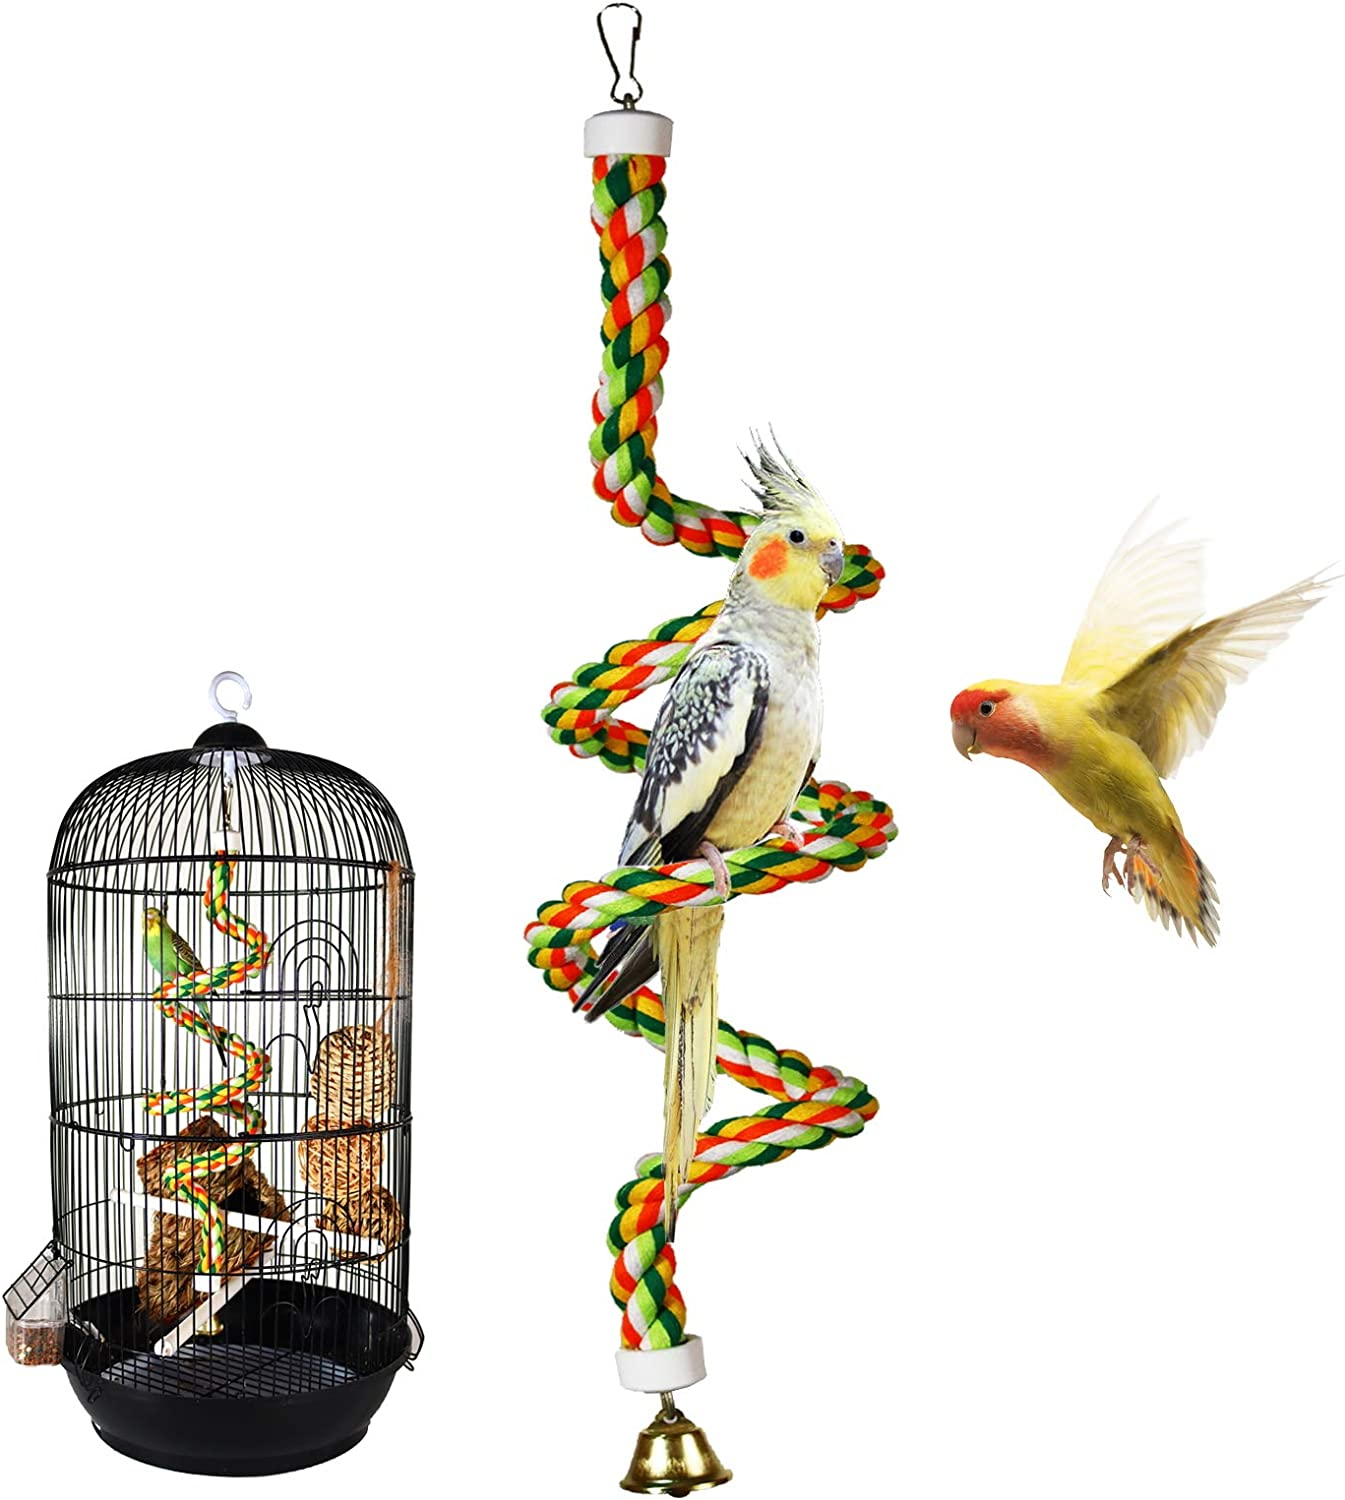 iLeson Bird Rope Perches Stand Ladder Toys for Parrots Parakeets Cockatiels Conures Macaw Budgies Swing Lovebird Cage Comfy Bird Spiral Bungee Rope Perch with Bell